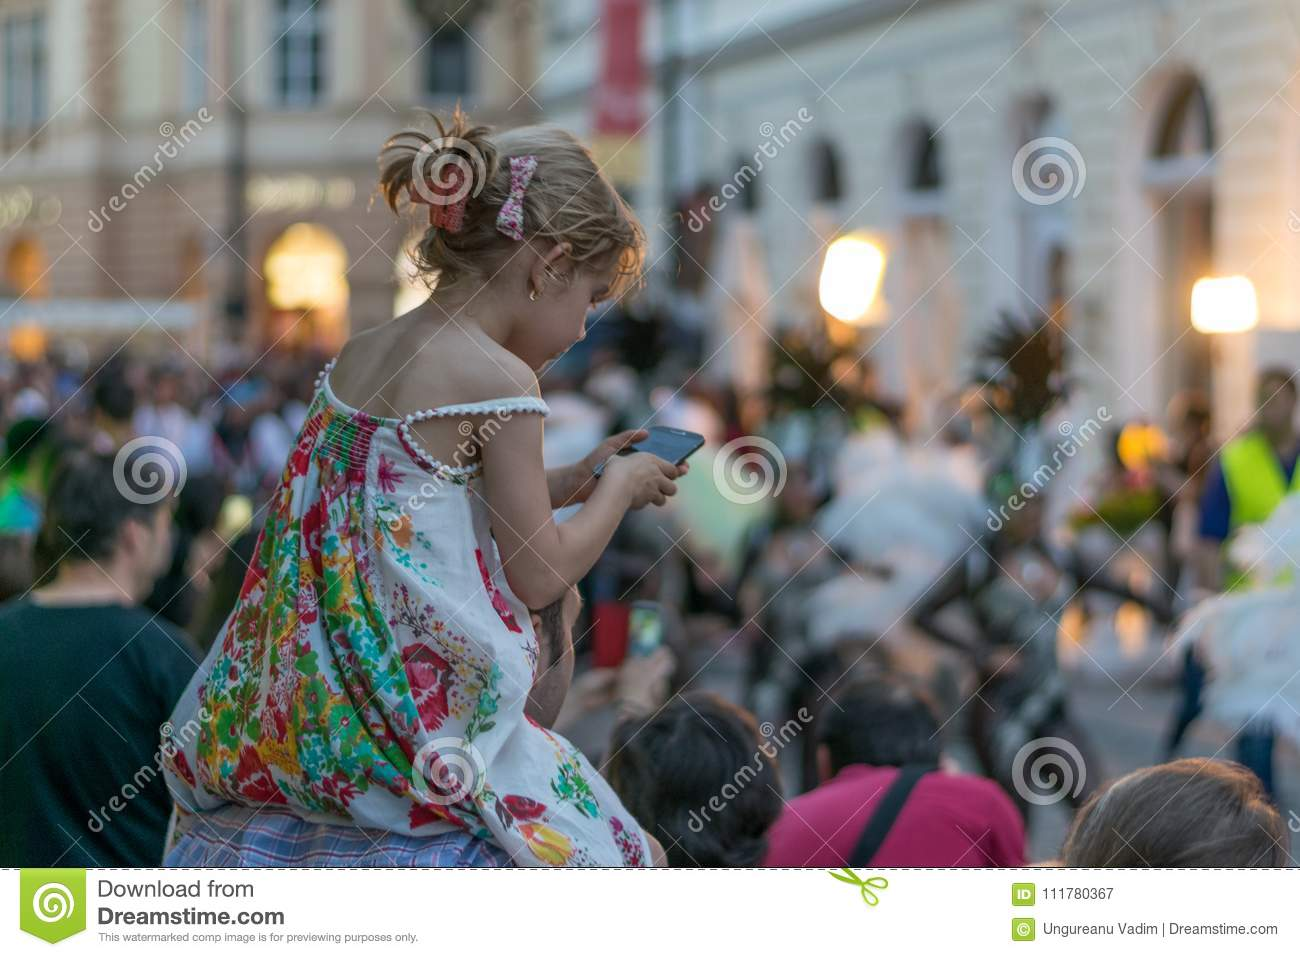 SIBIU, ROMANIA - 17 JUNE 2016: A girl is checking the phone while some carnaval dances are going on, during Sibiu International Th